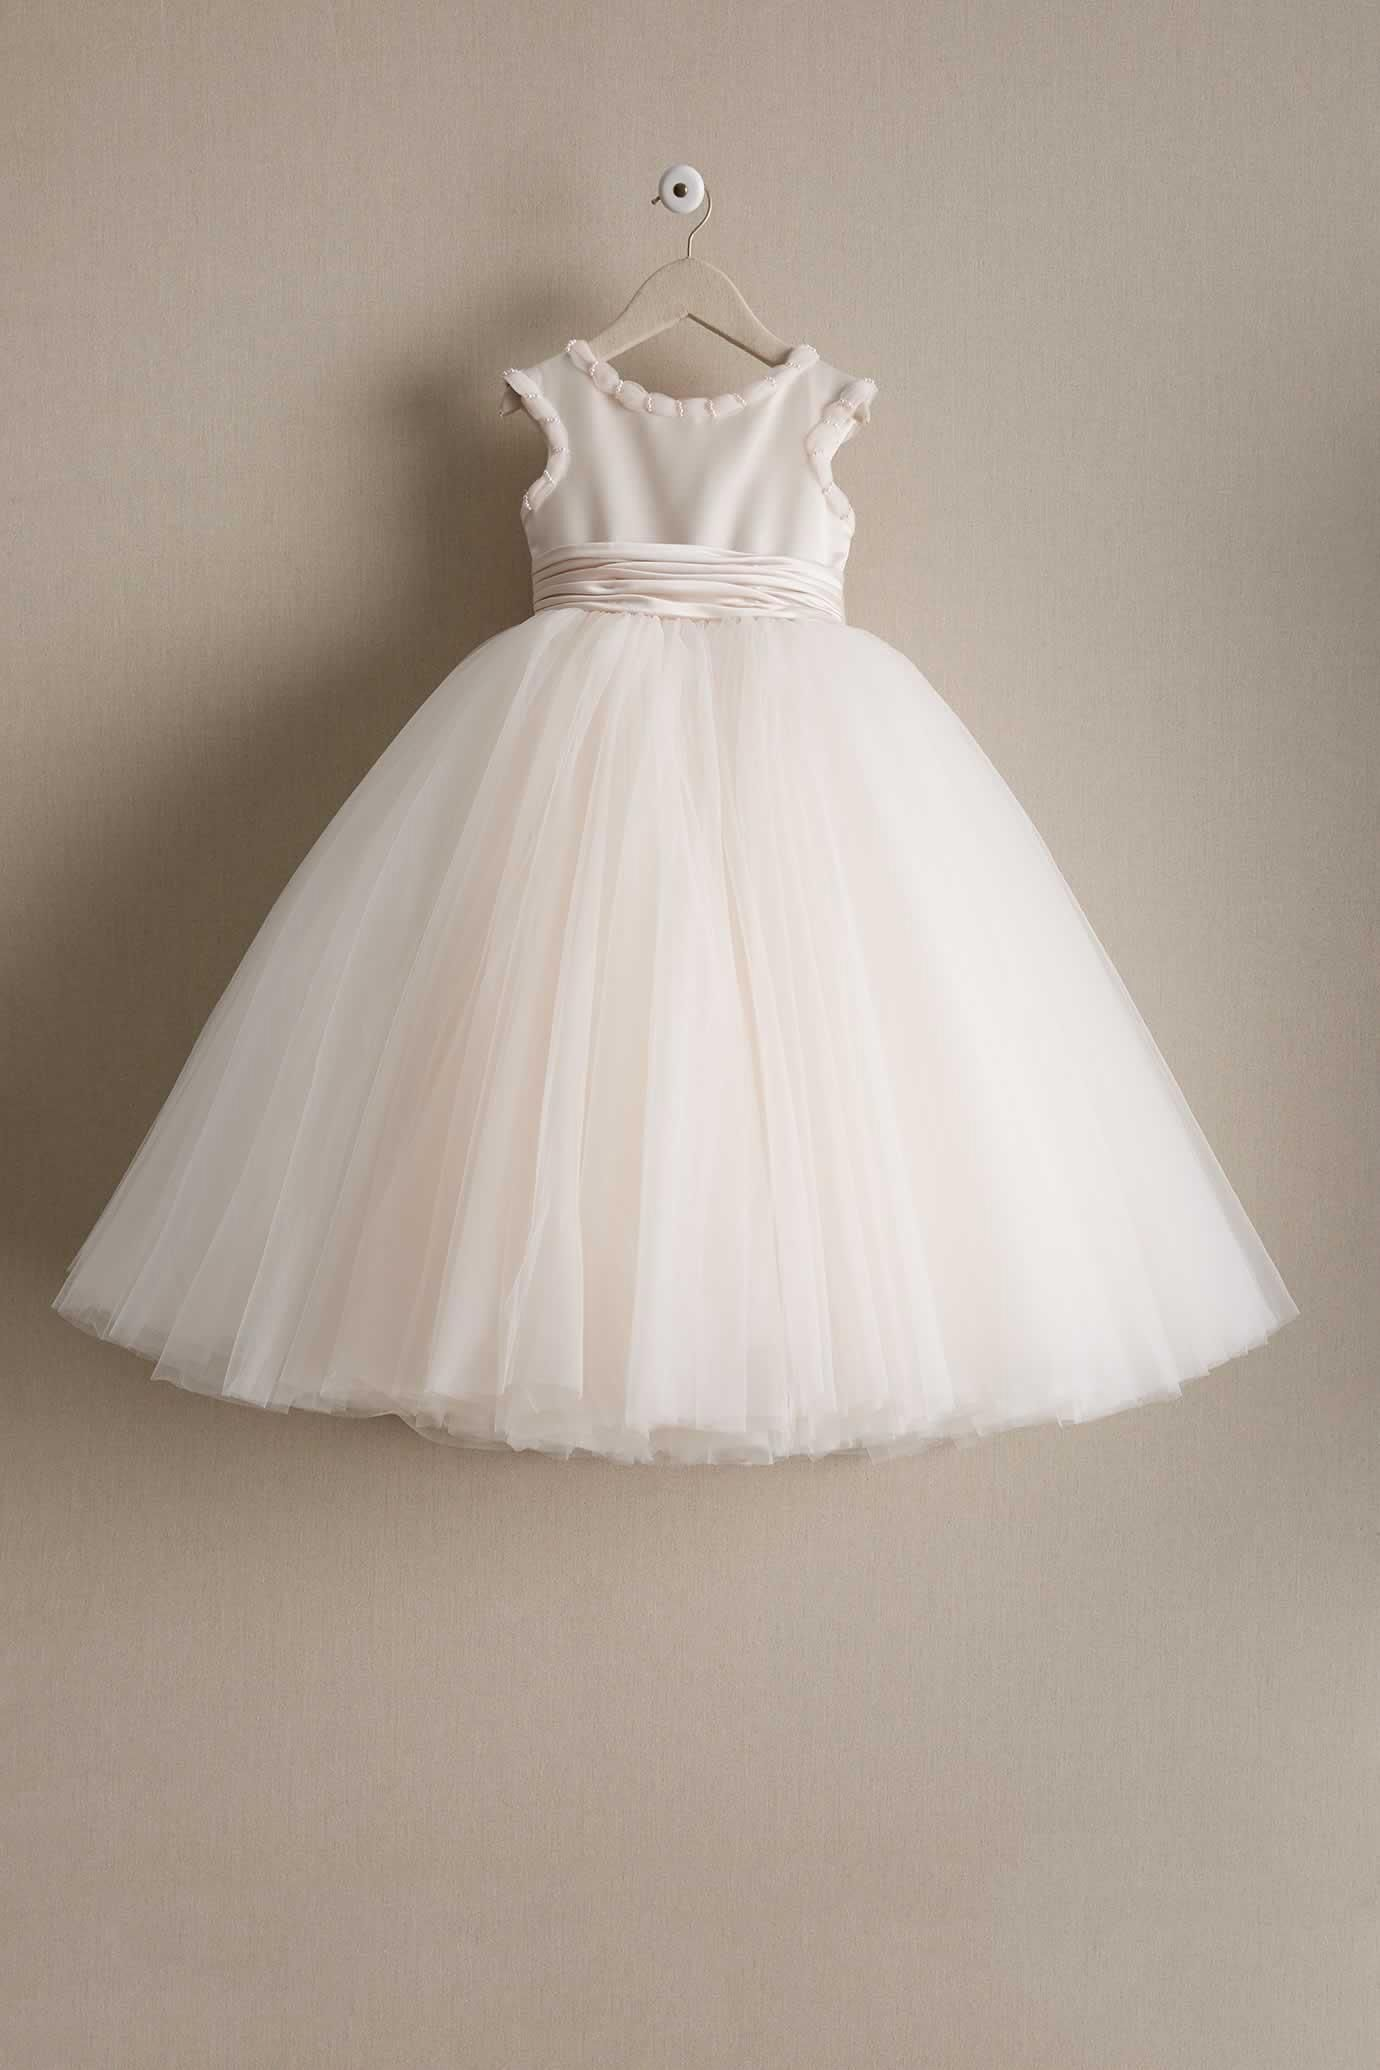 5d567a9de Girls Tulle Princess Dress: #Chasingfireflies $319.00$18.00$59.00